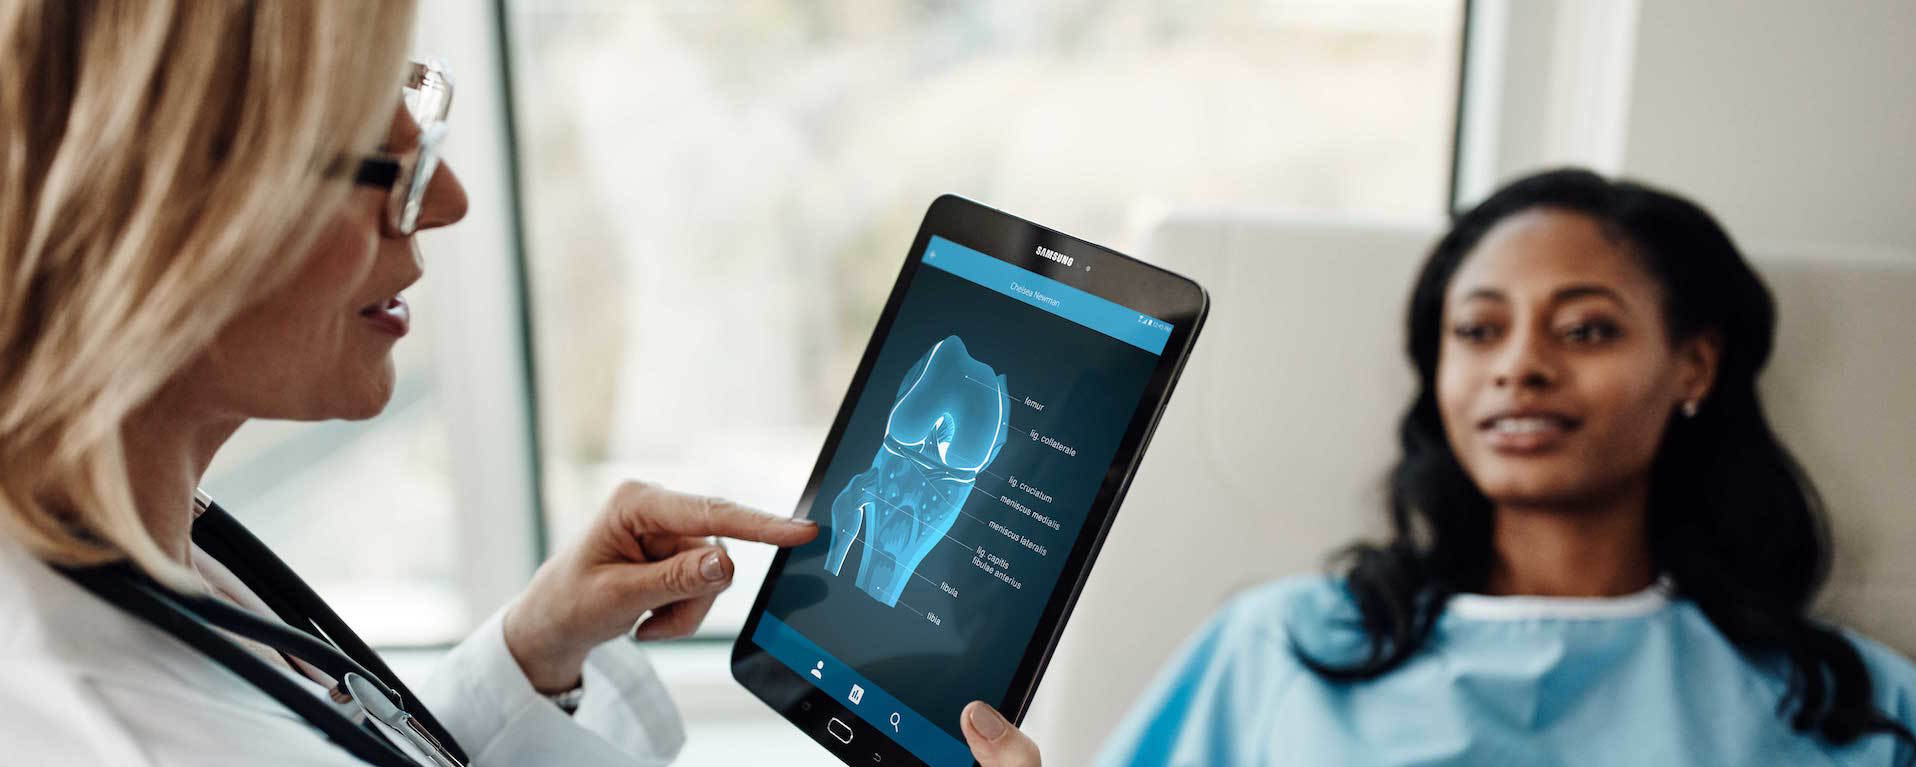 Mobile Technology: 5 Things Physicians Want From Mobile Technology